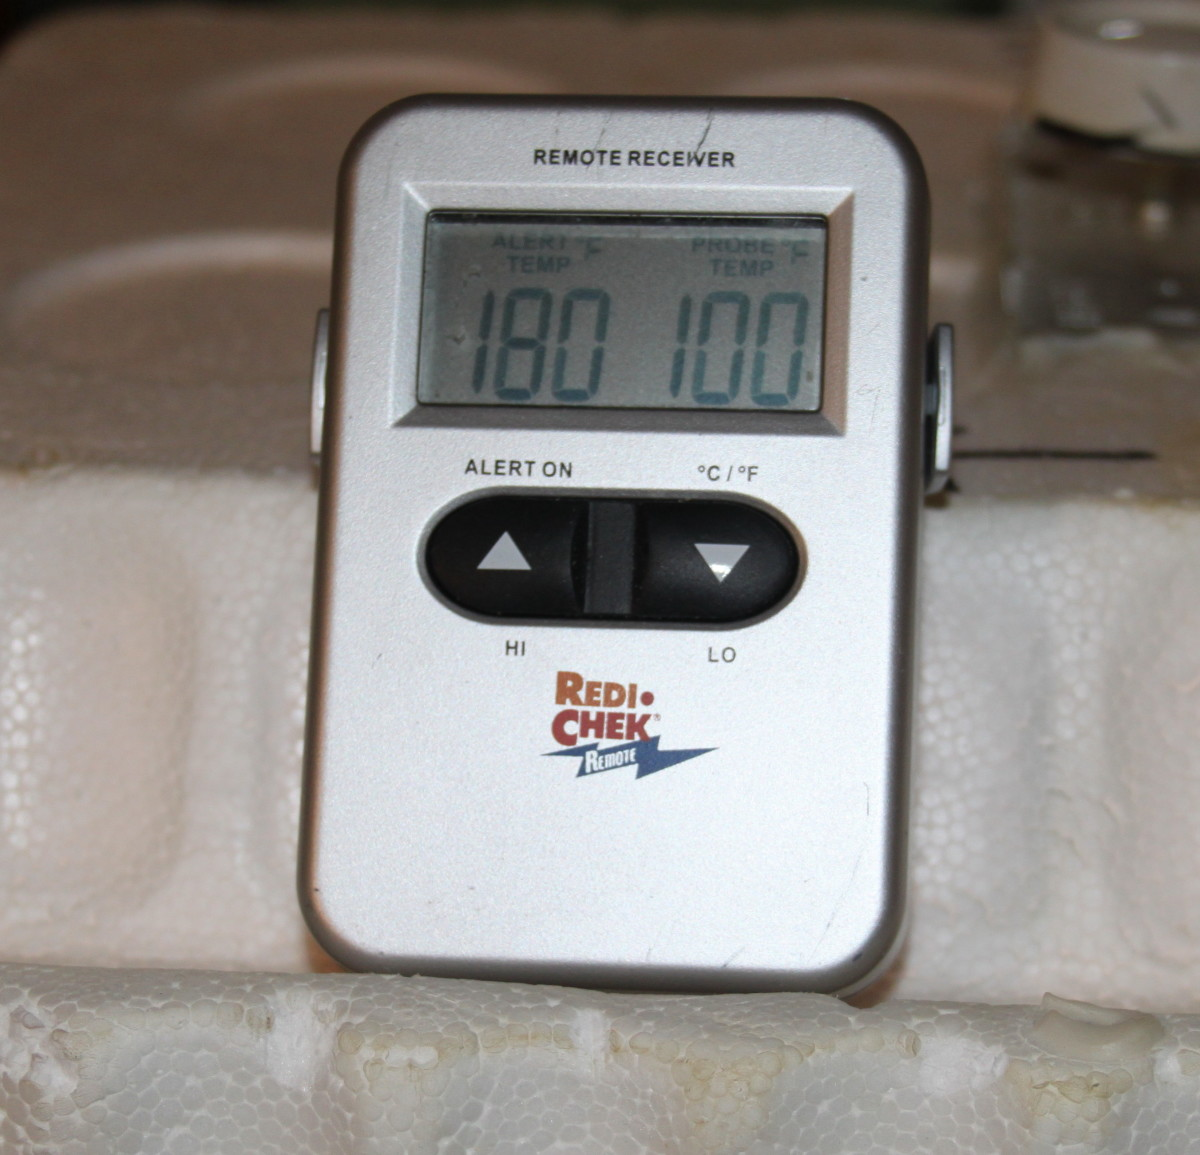 A digital thermometer displays the temperature on the right.